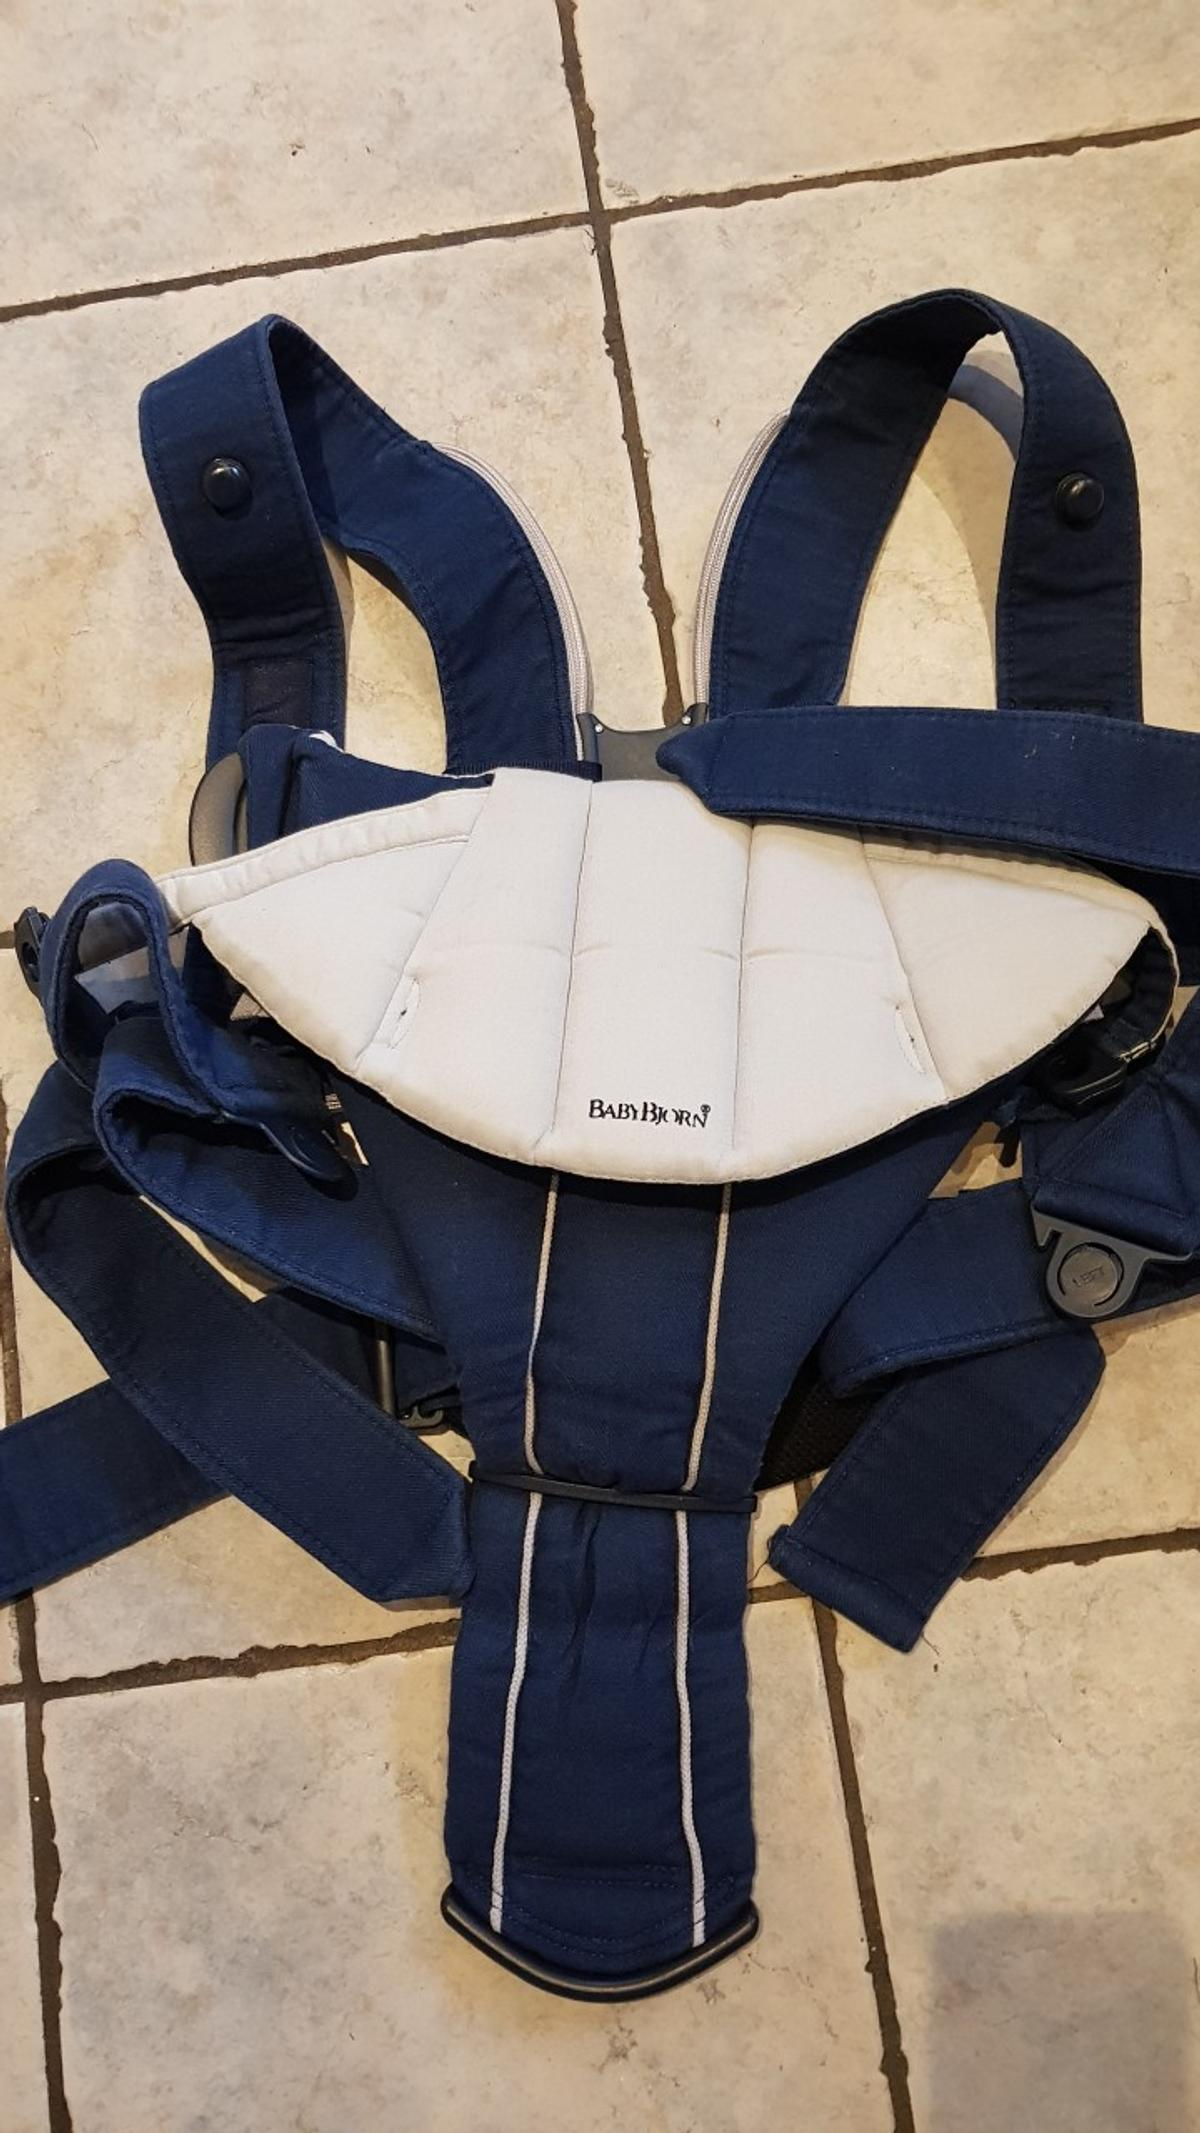 blue baby carrier from birth to carry front and back from older. good condition